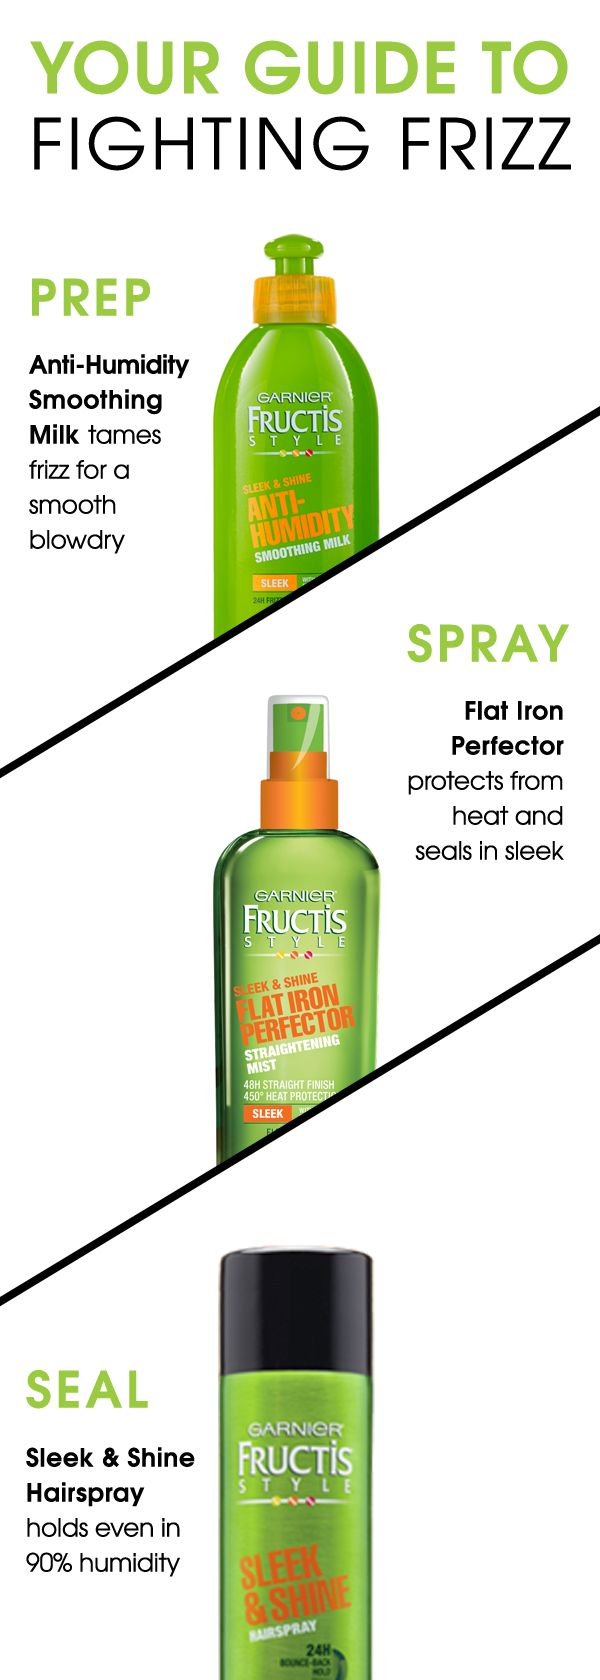 Fight frizz once and for all! Here are some simple tips and tricks to keep your hair looking flawless 24/7. Step 1. Prep and add moisture. Garnier Fructis Anti-Humidity Smoothing Milk tames frizz for a smooth blow dry. Step 2. Protect your hair from the heat of your flat or curling iron with Flat Iron Perfector. Step 3: Seal your look with a hairspray that keeps hold even in humidity. Shop now.